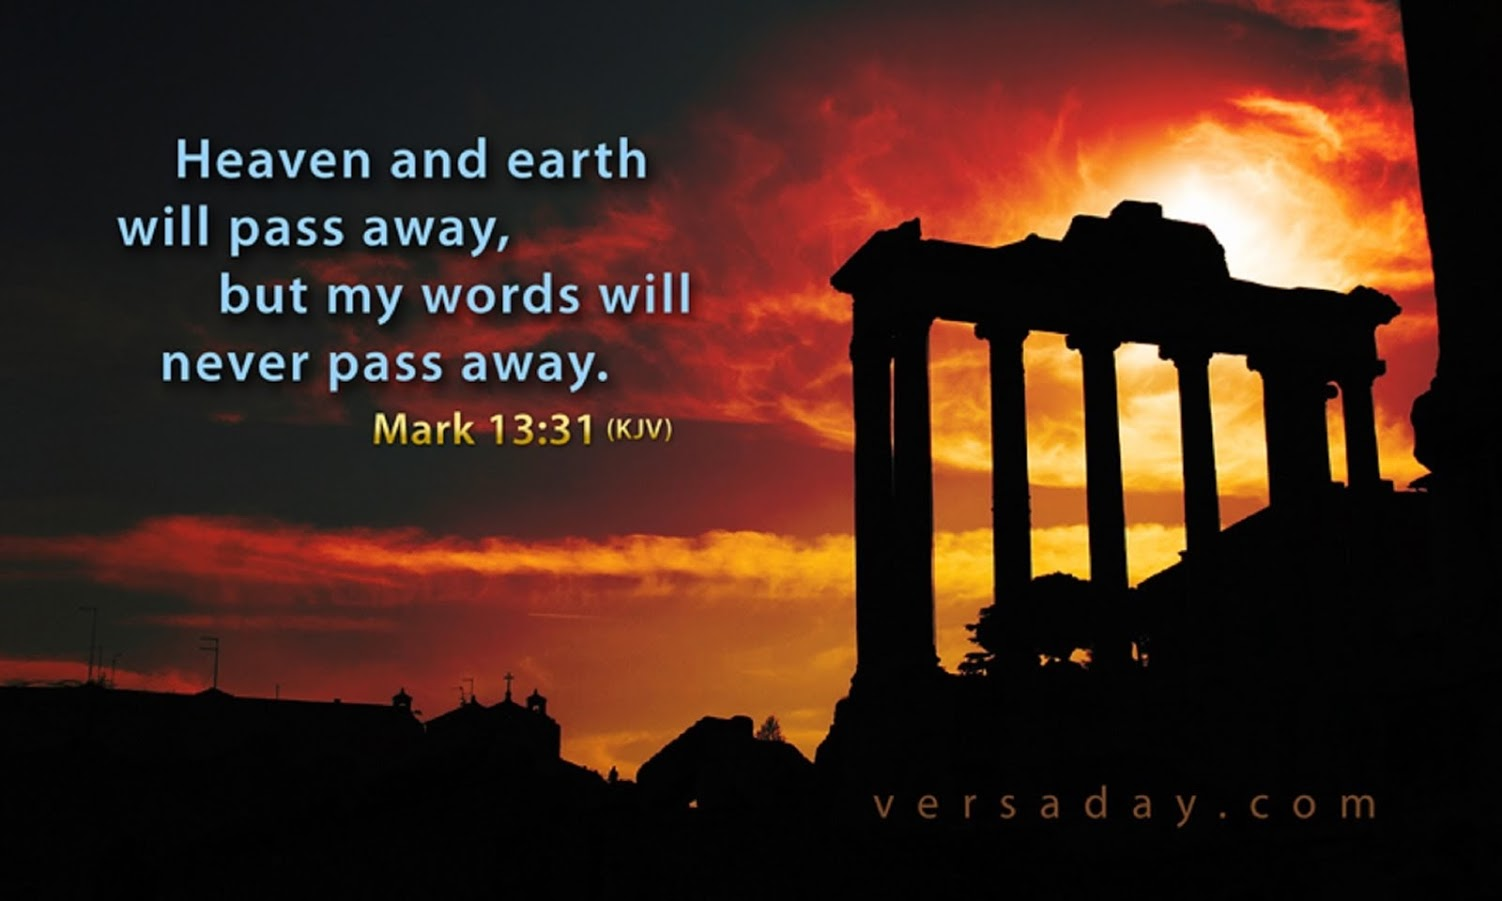 HEAVEN AND EARTH WILL PASS AWAY BUT MY WORDS WILL NEVER PASS AWAY